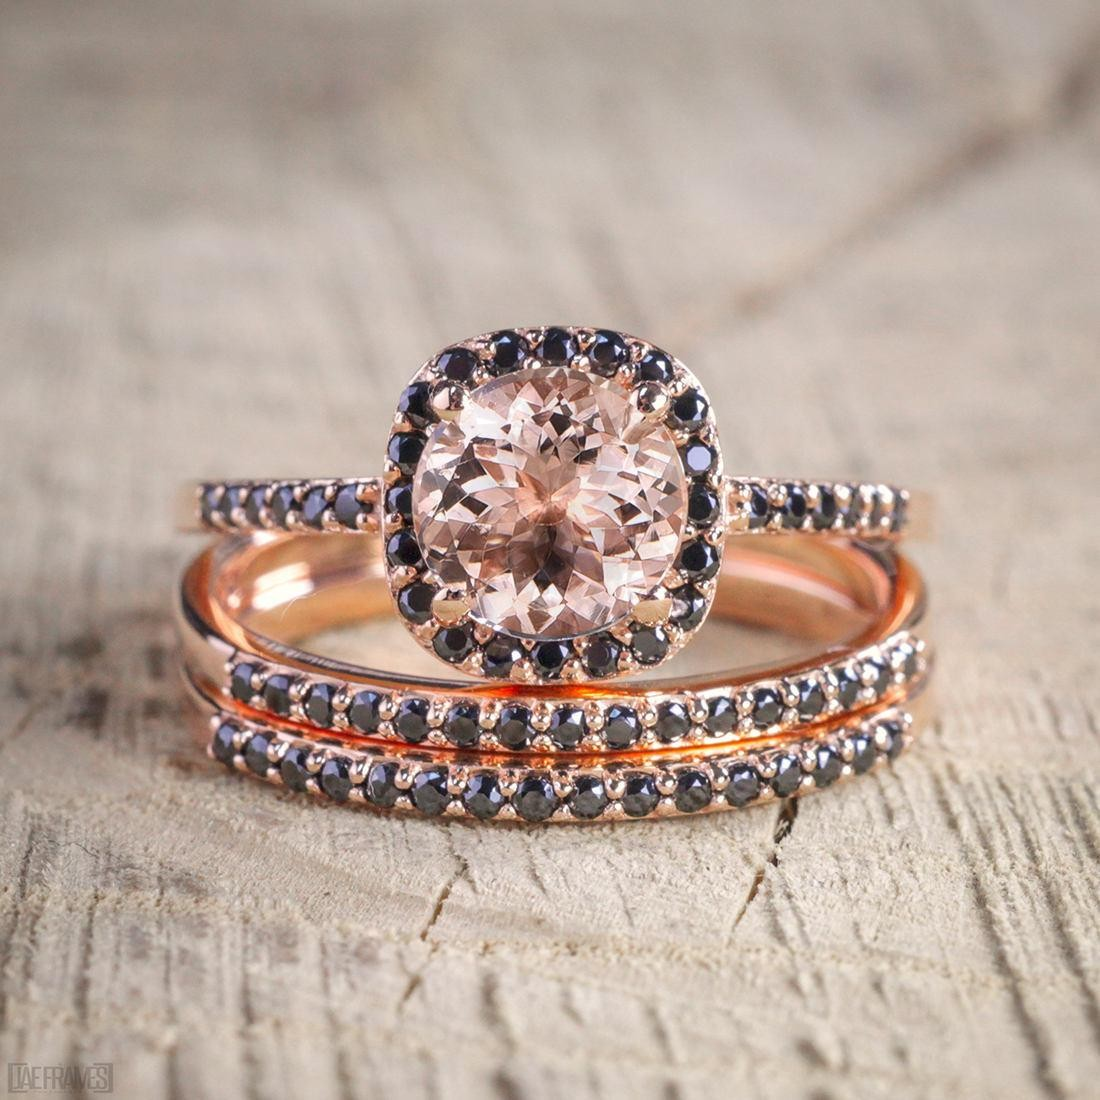 sale 250 carat morganite and black diamond trio wedding bridal ring set in 10k rose gold with engagement ring 2 wedding bands - Rose Gold Wedding Ring Set